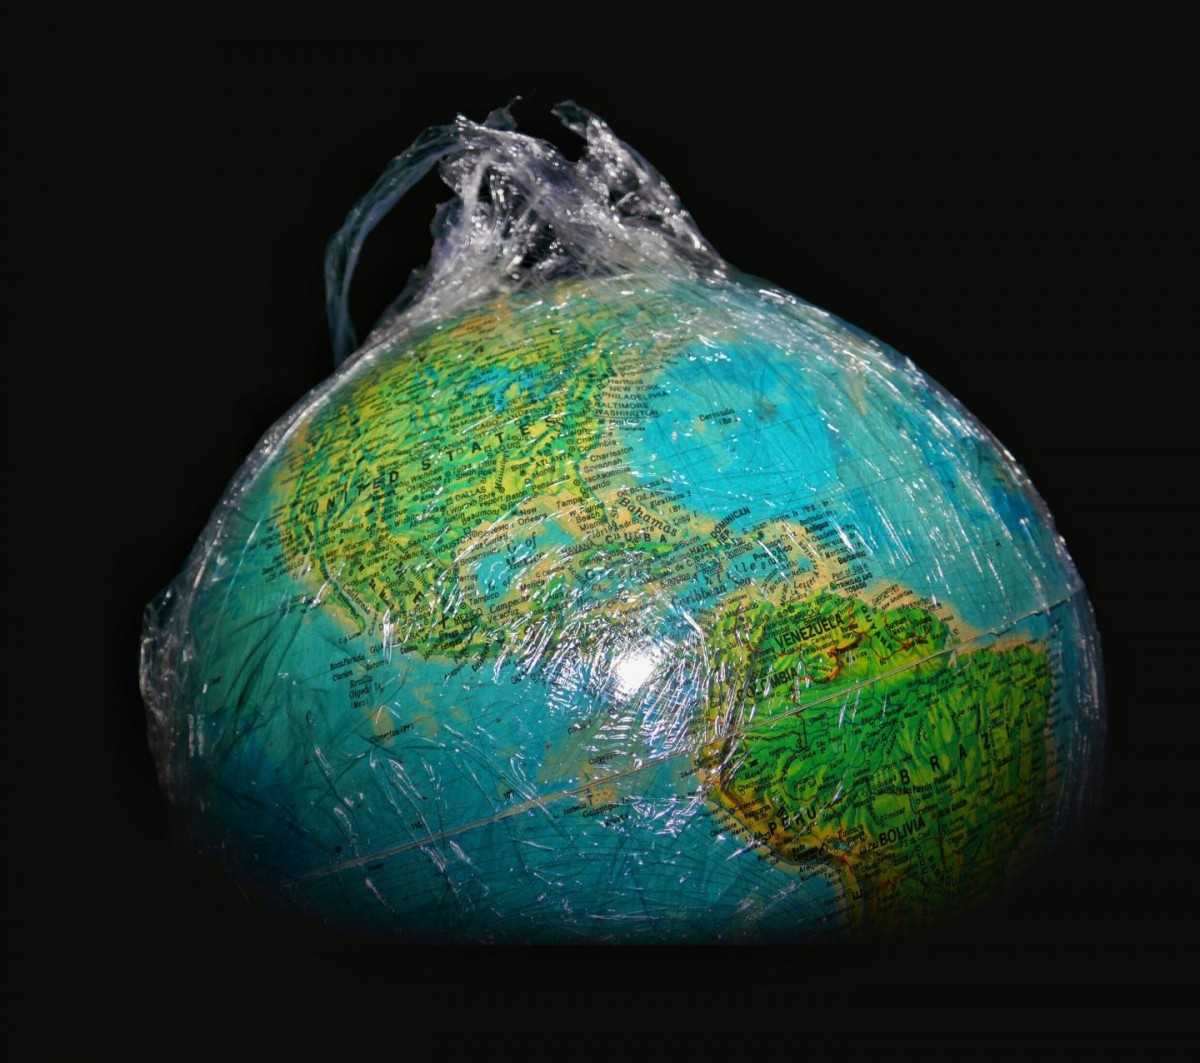 Plastic planet is shown. Credit: University of Leicester / Jonathan Sisson